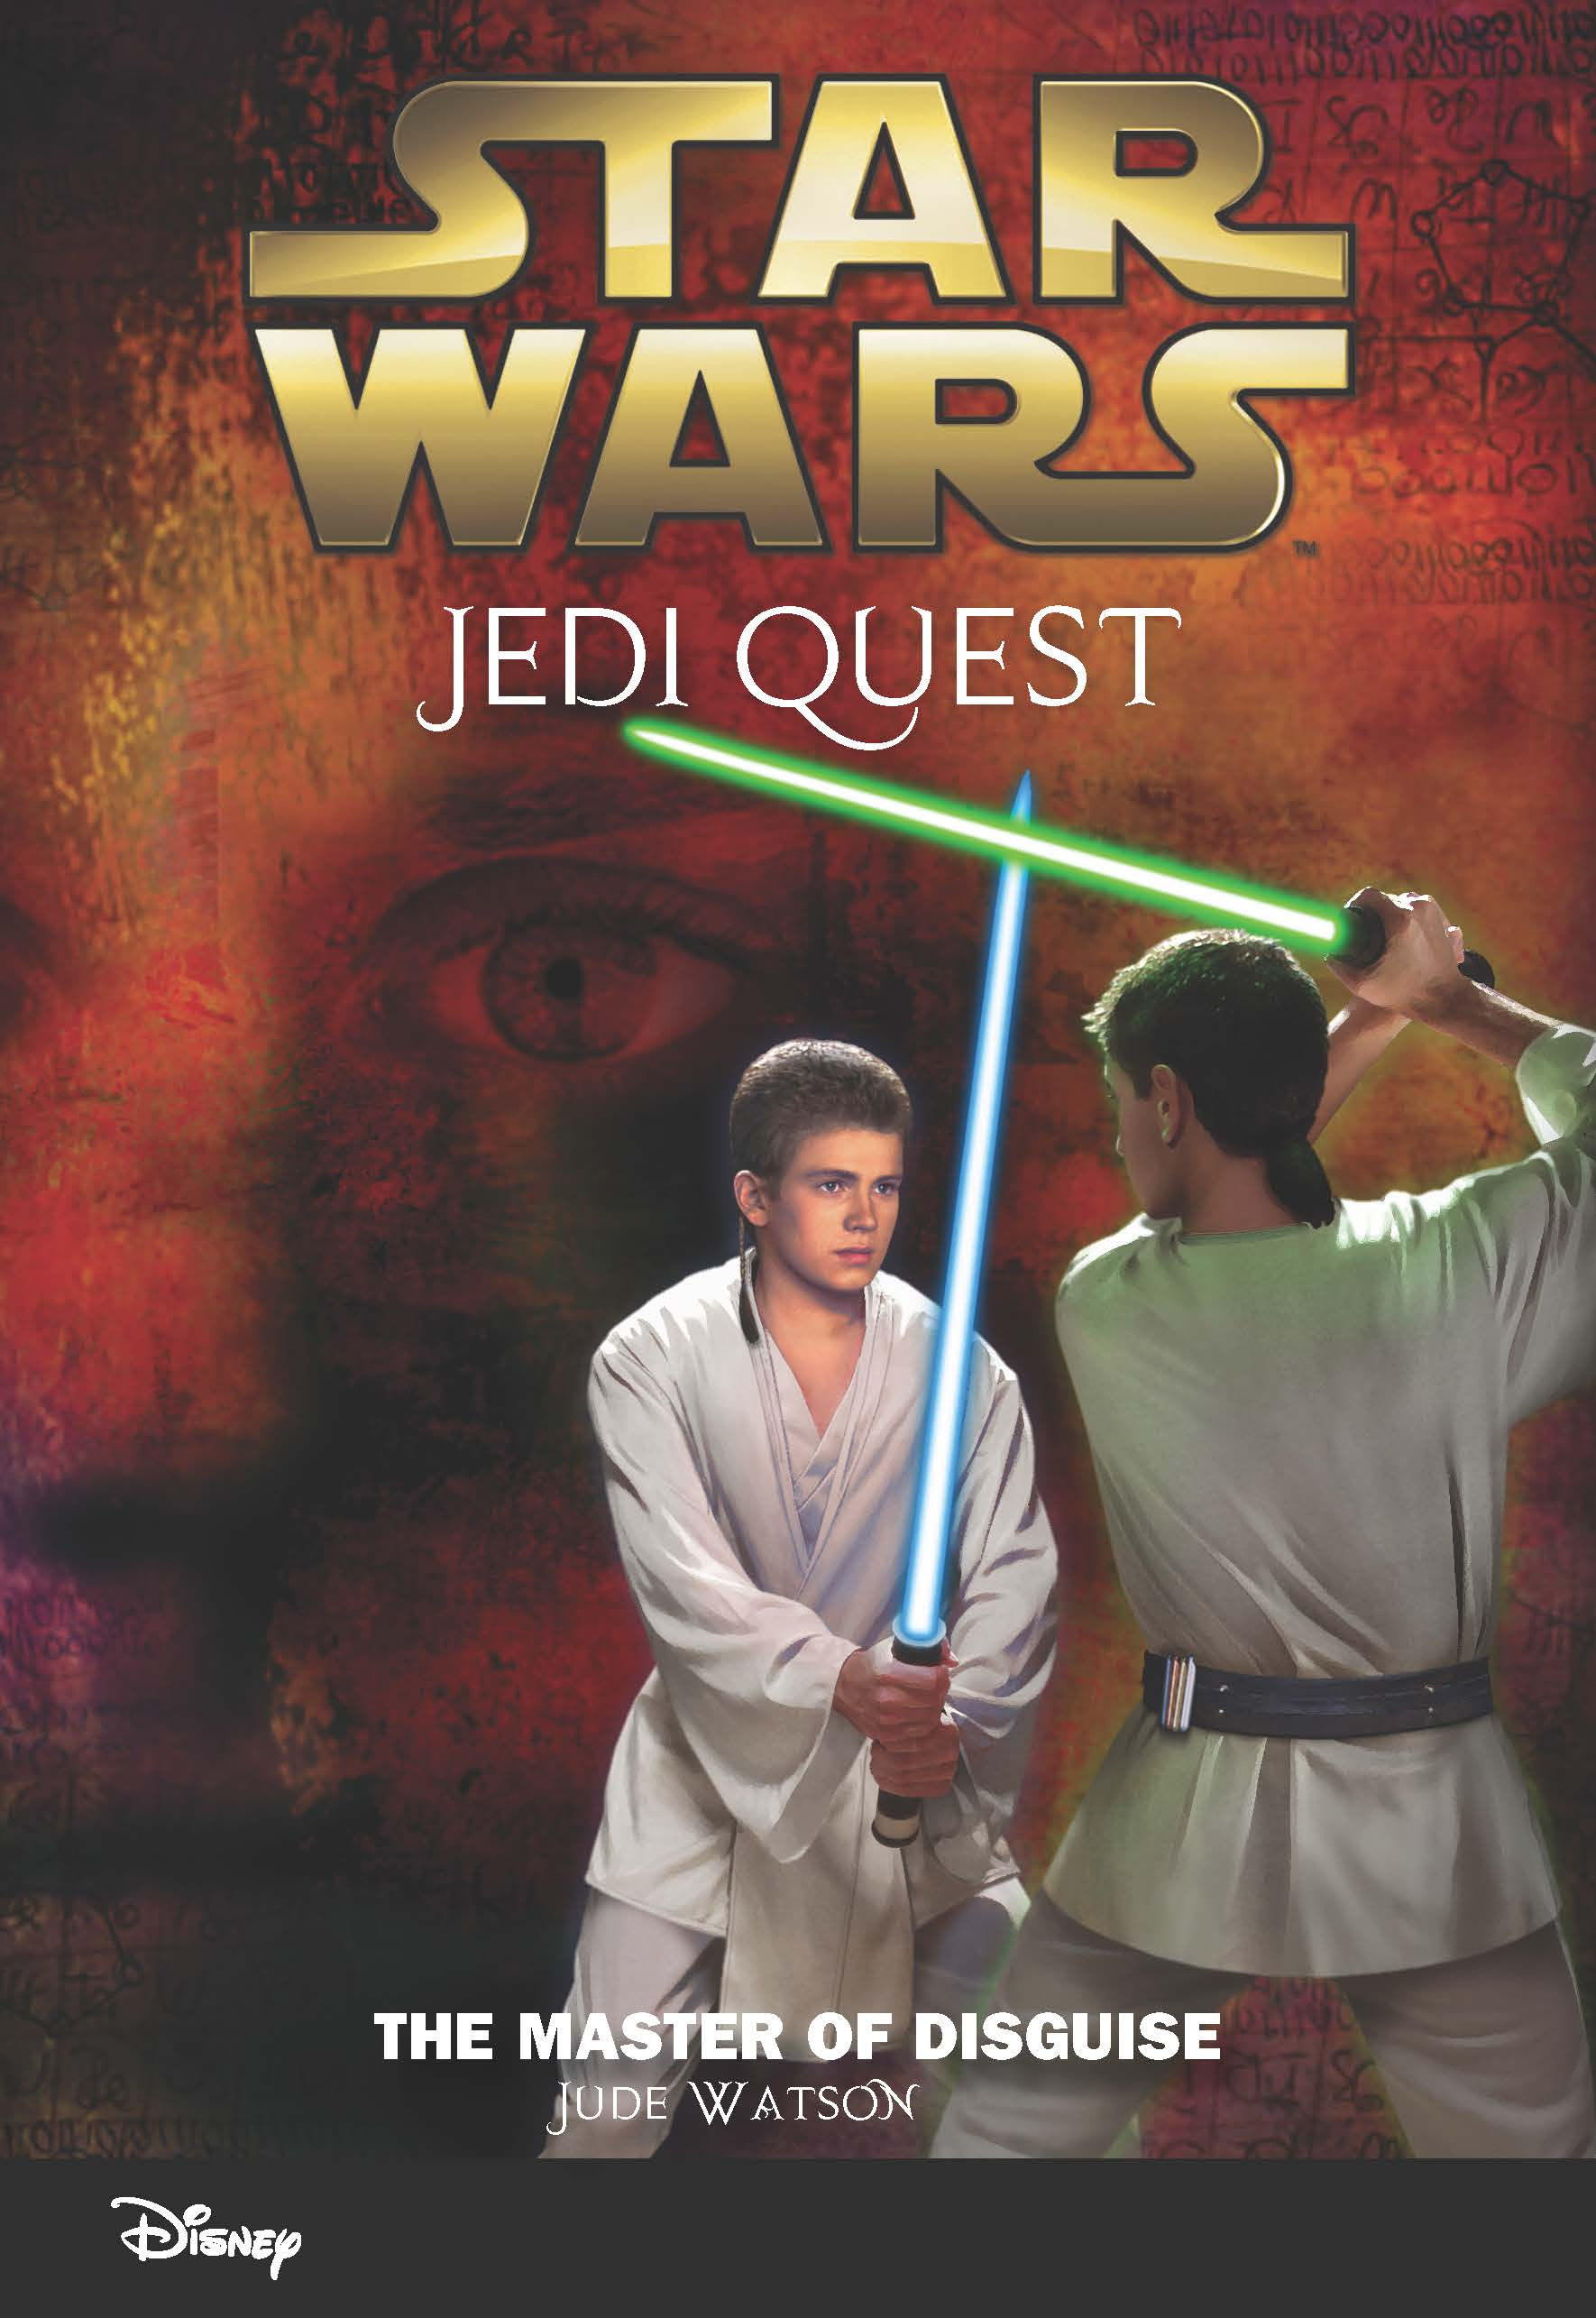 Star Wars Jedi Quest: The Master of Disguise